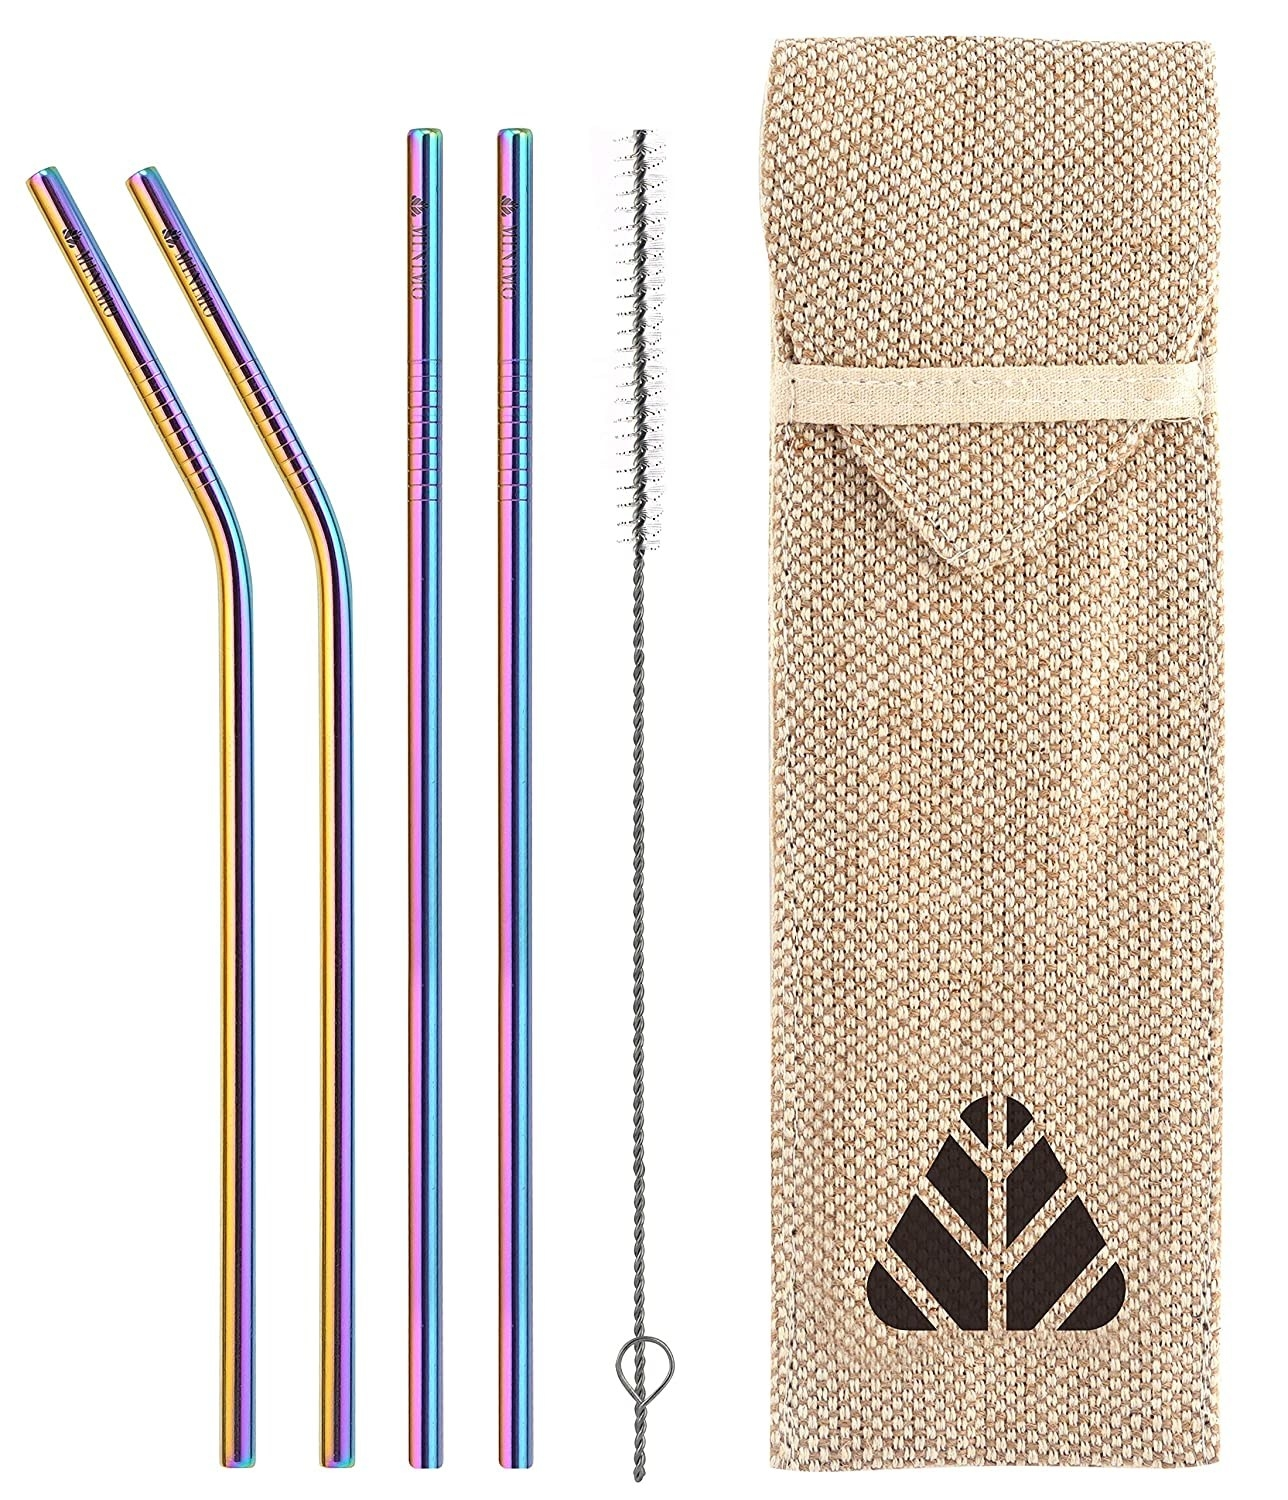 Rainbow stainless straws next to a cloth packaging